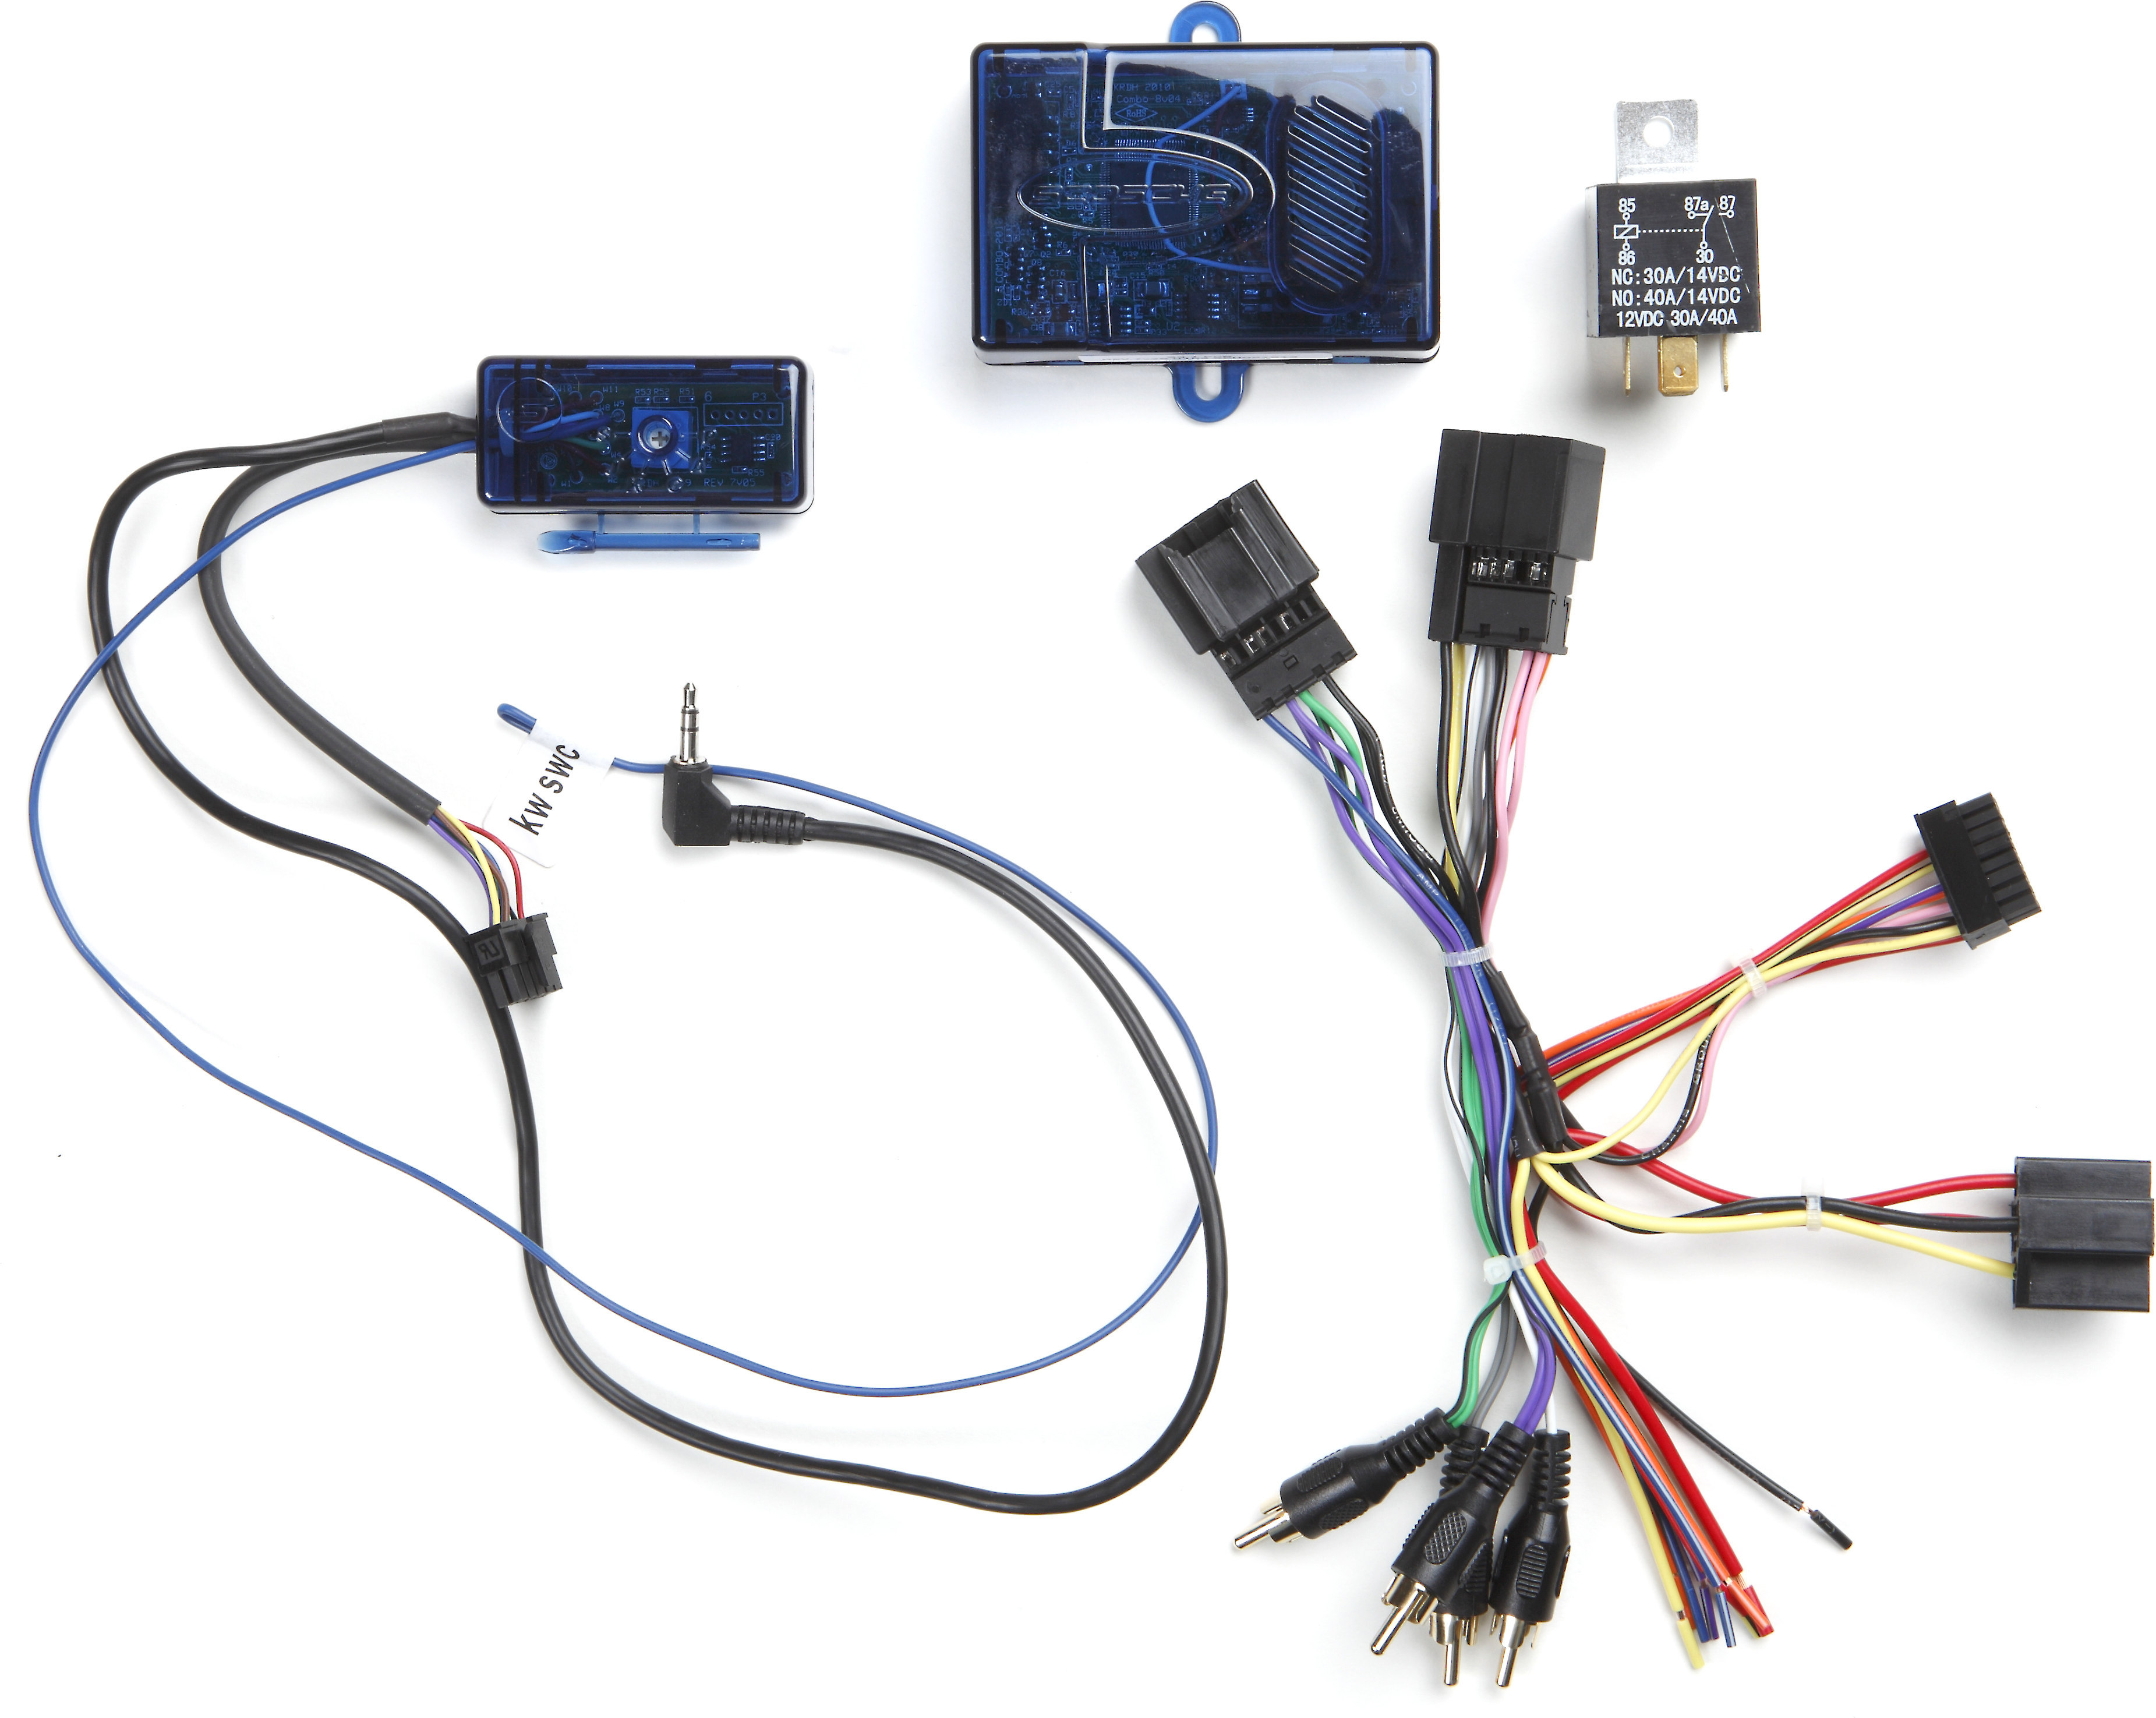 scosche gm23sr wiring interface connect a new car stereo and retain safety  warning chimes and steering wheel audio controls in 2006-up gm vehicles at